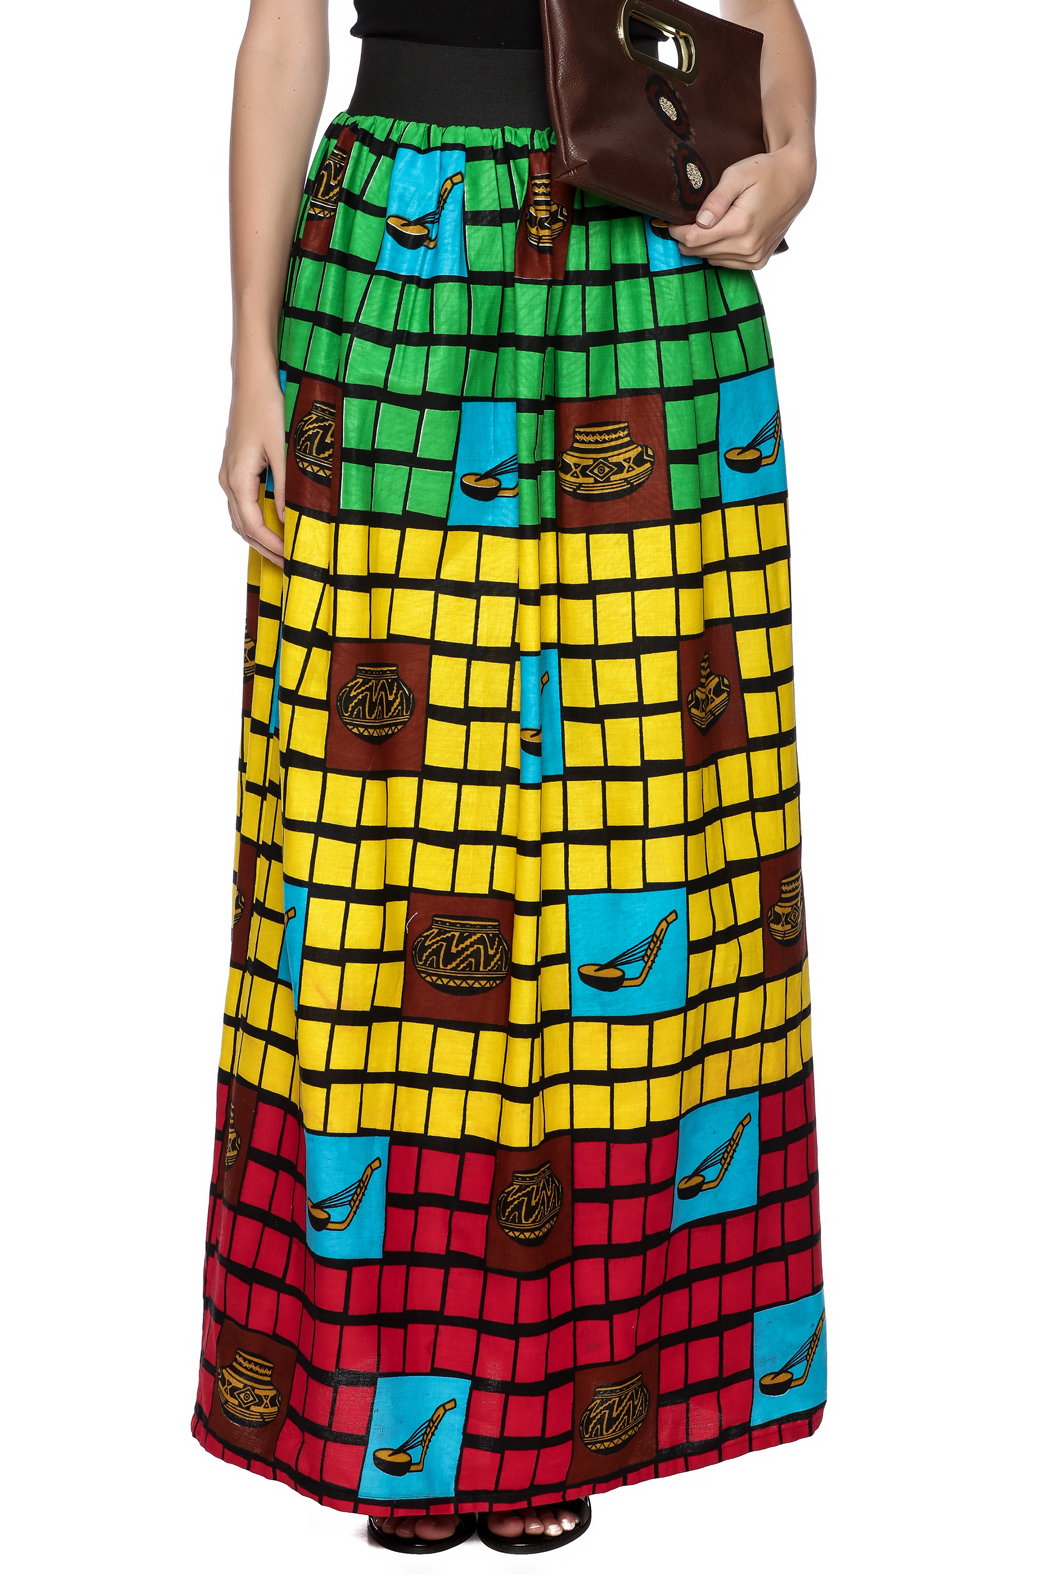 Love's Hangover Creations Tanzania Maxi Skirt - Side Cropped Image